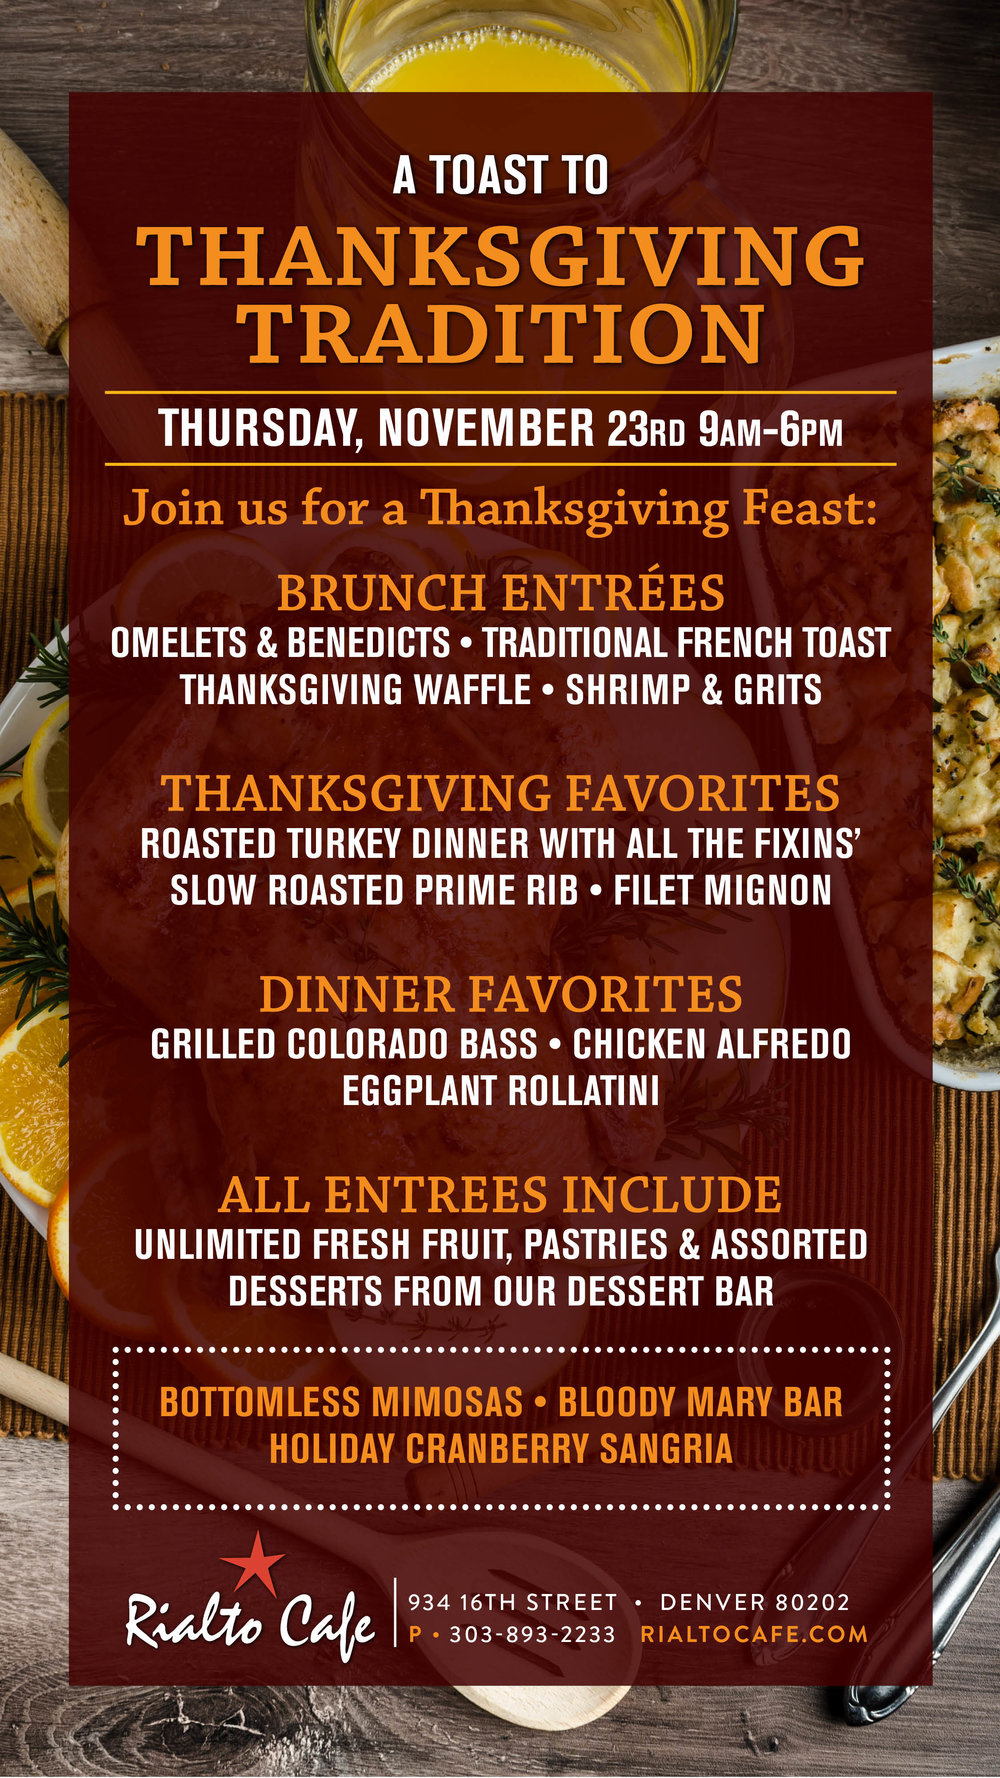 A toast to Thanksgiving Tradition at Rialto Cafe